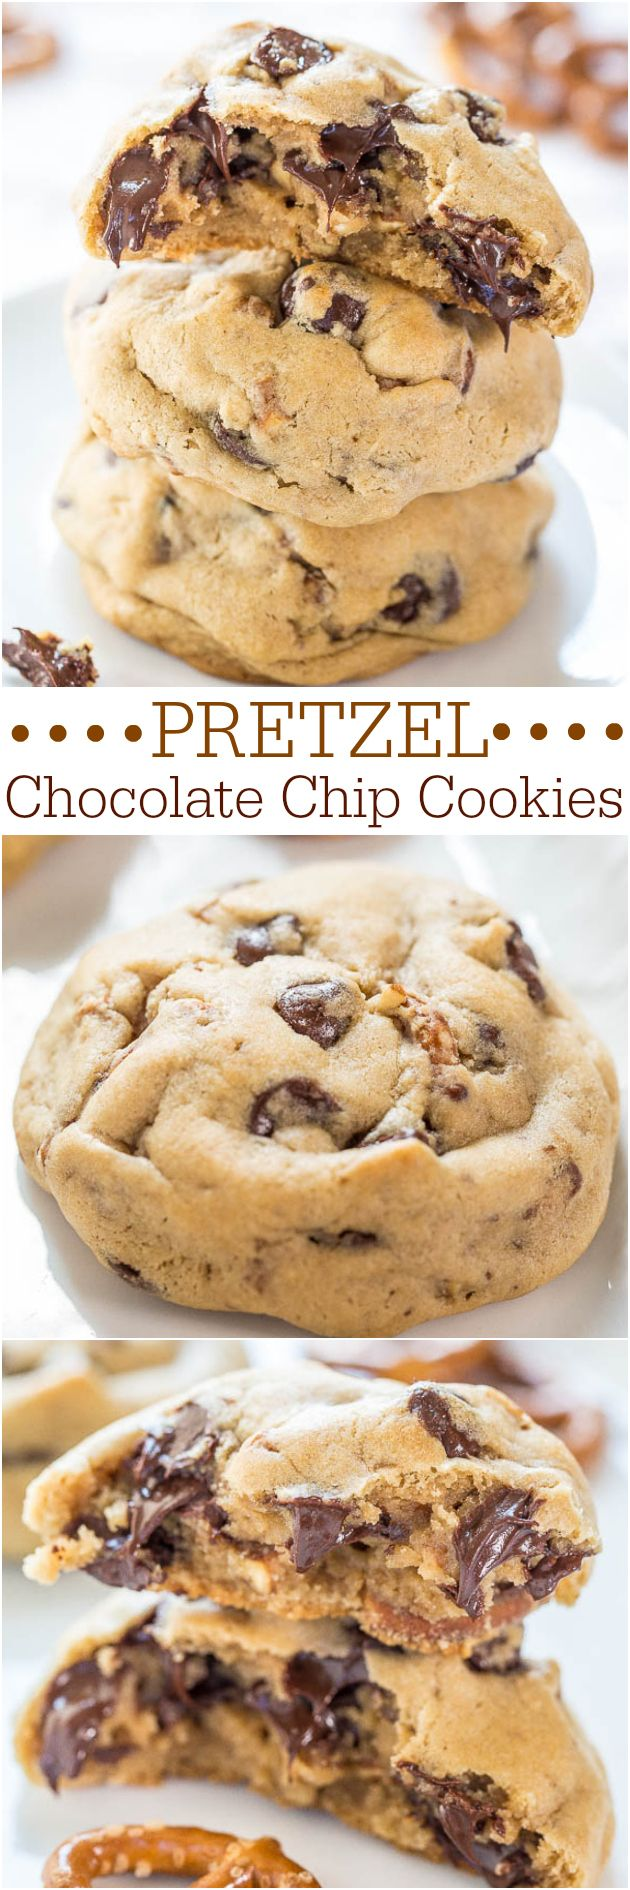 Pretzel Chocolate Chip Cookies - Soft chocolate chip cookies packed with chocolate chips and crunchy pretzels!! Salty-and-sweet all in one!! Recipe by @averie